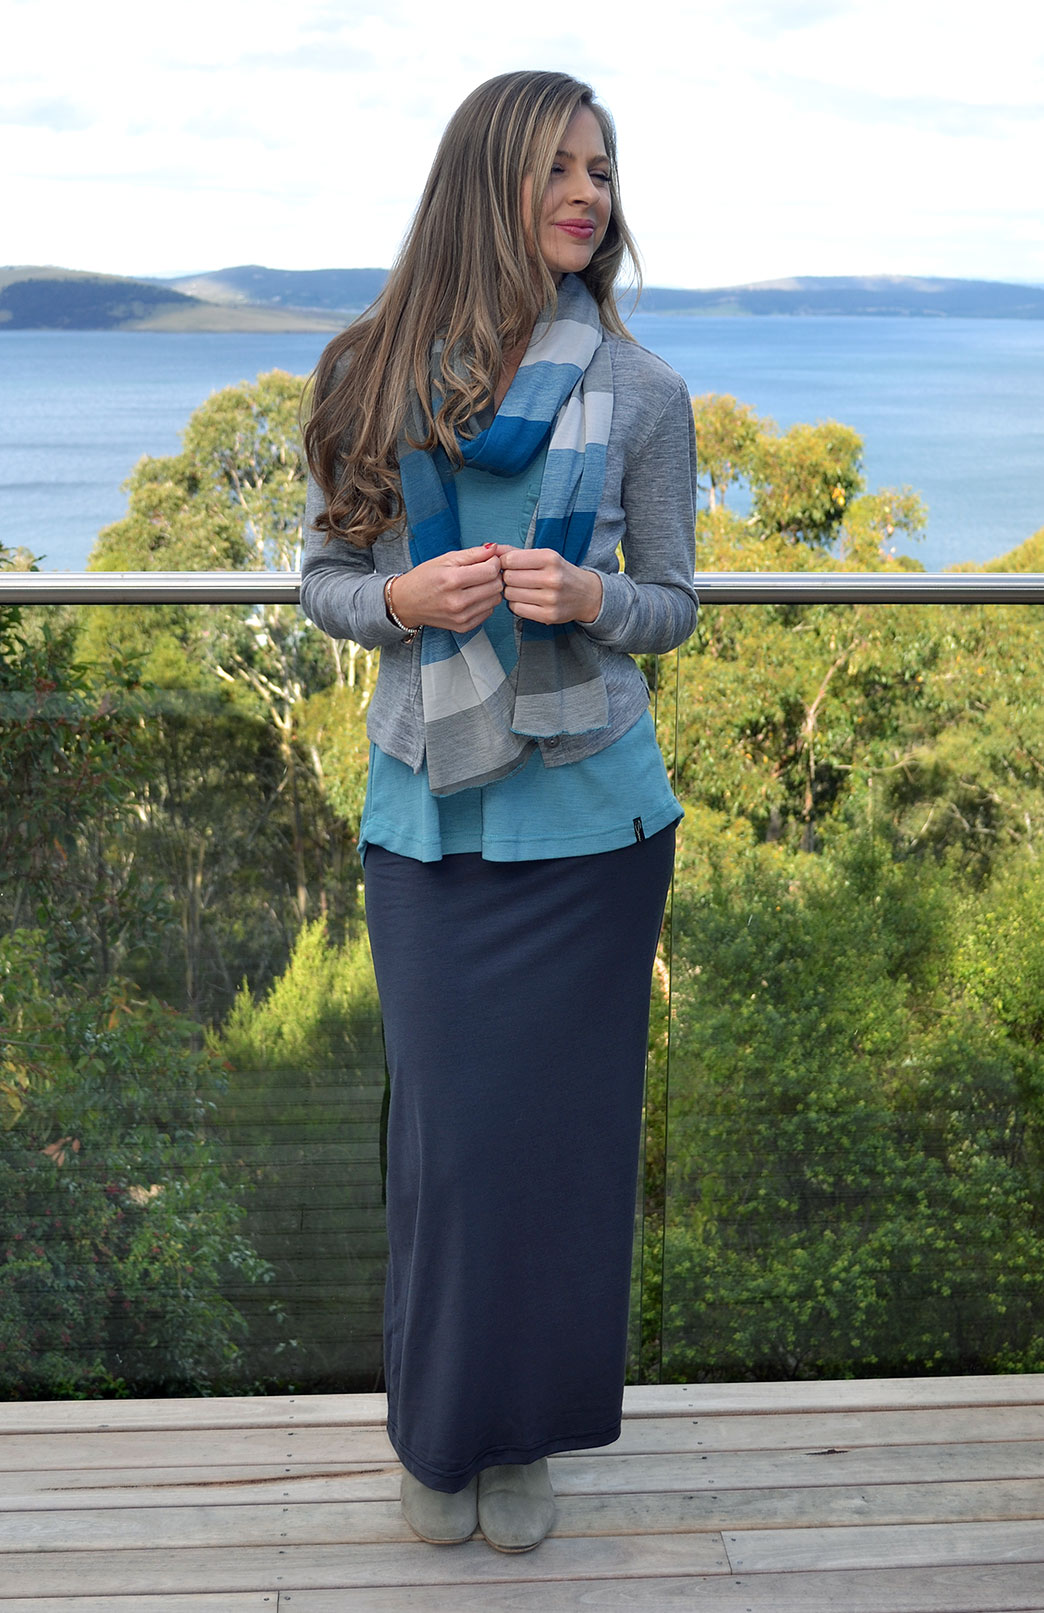 Maxi Skirt - Women's Steel Grey Wool Summer Maxi Skirt - Smitten Merino Tasmania Australia